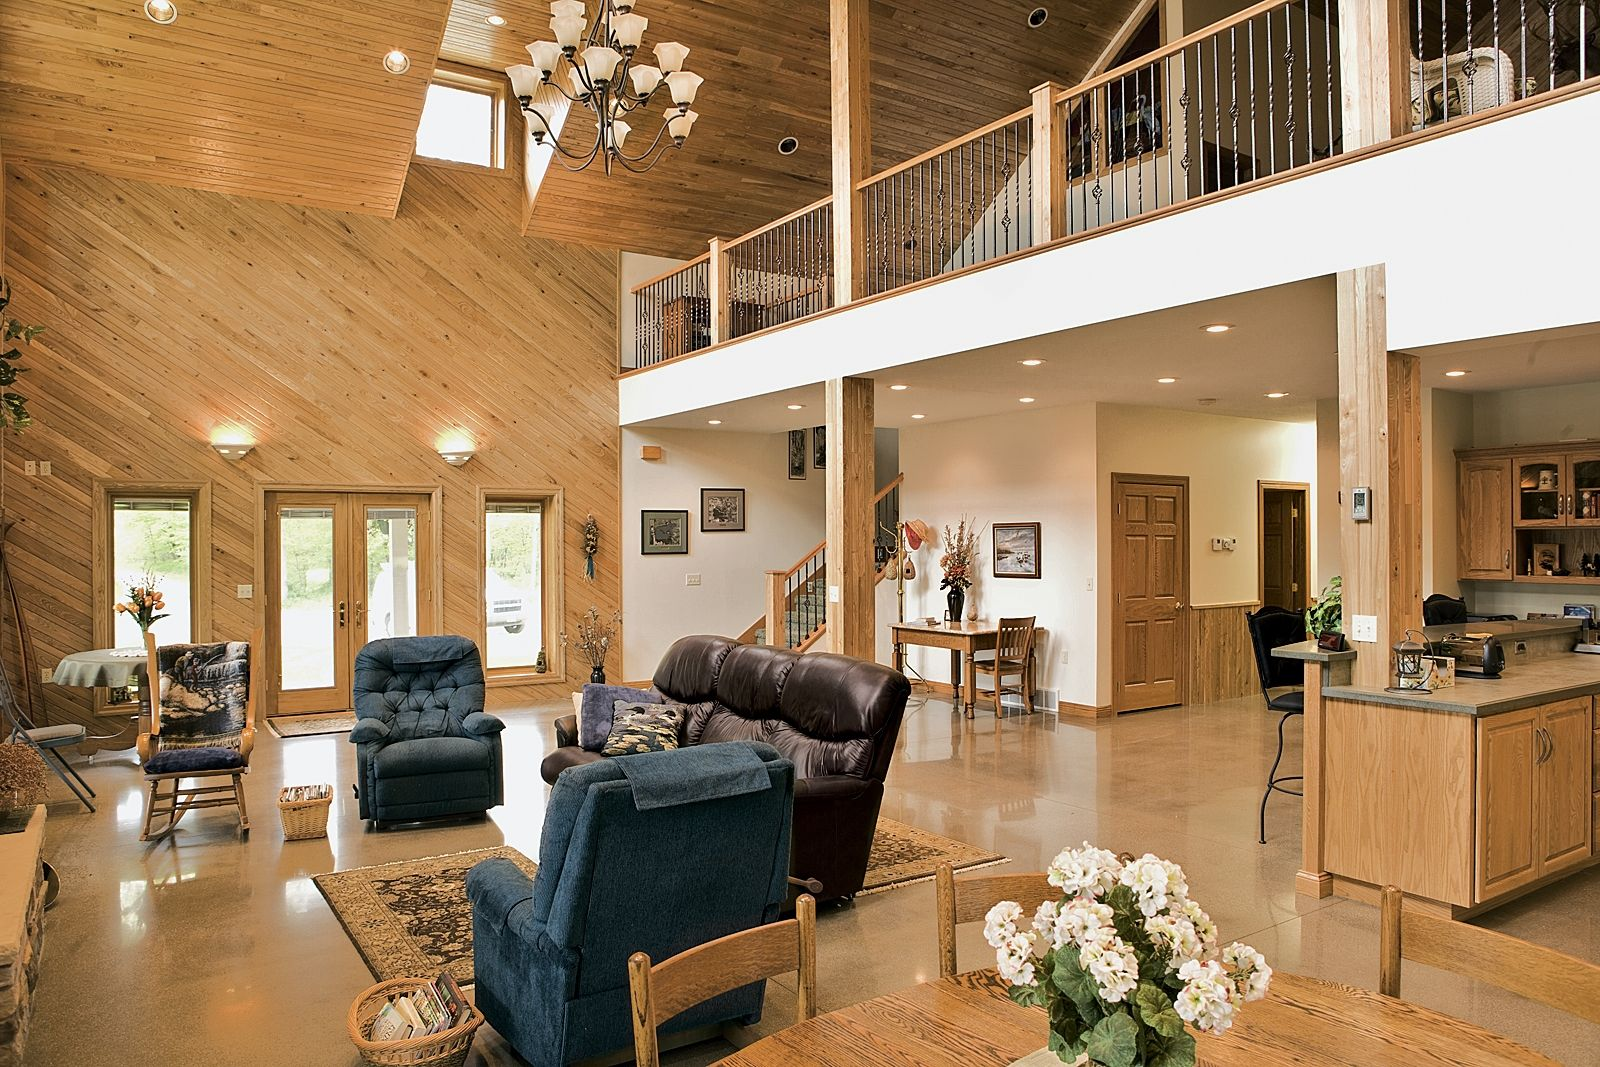 Pole barn home interior photos morton pole barn houses for Pole barn interior ideas